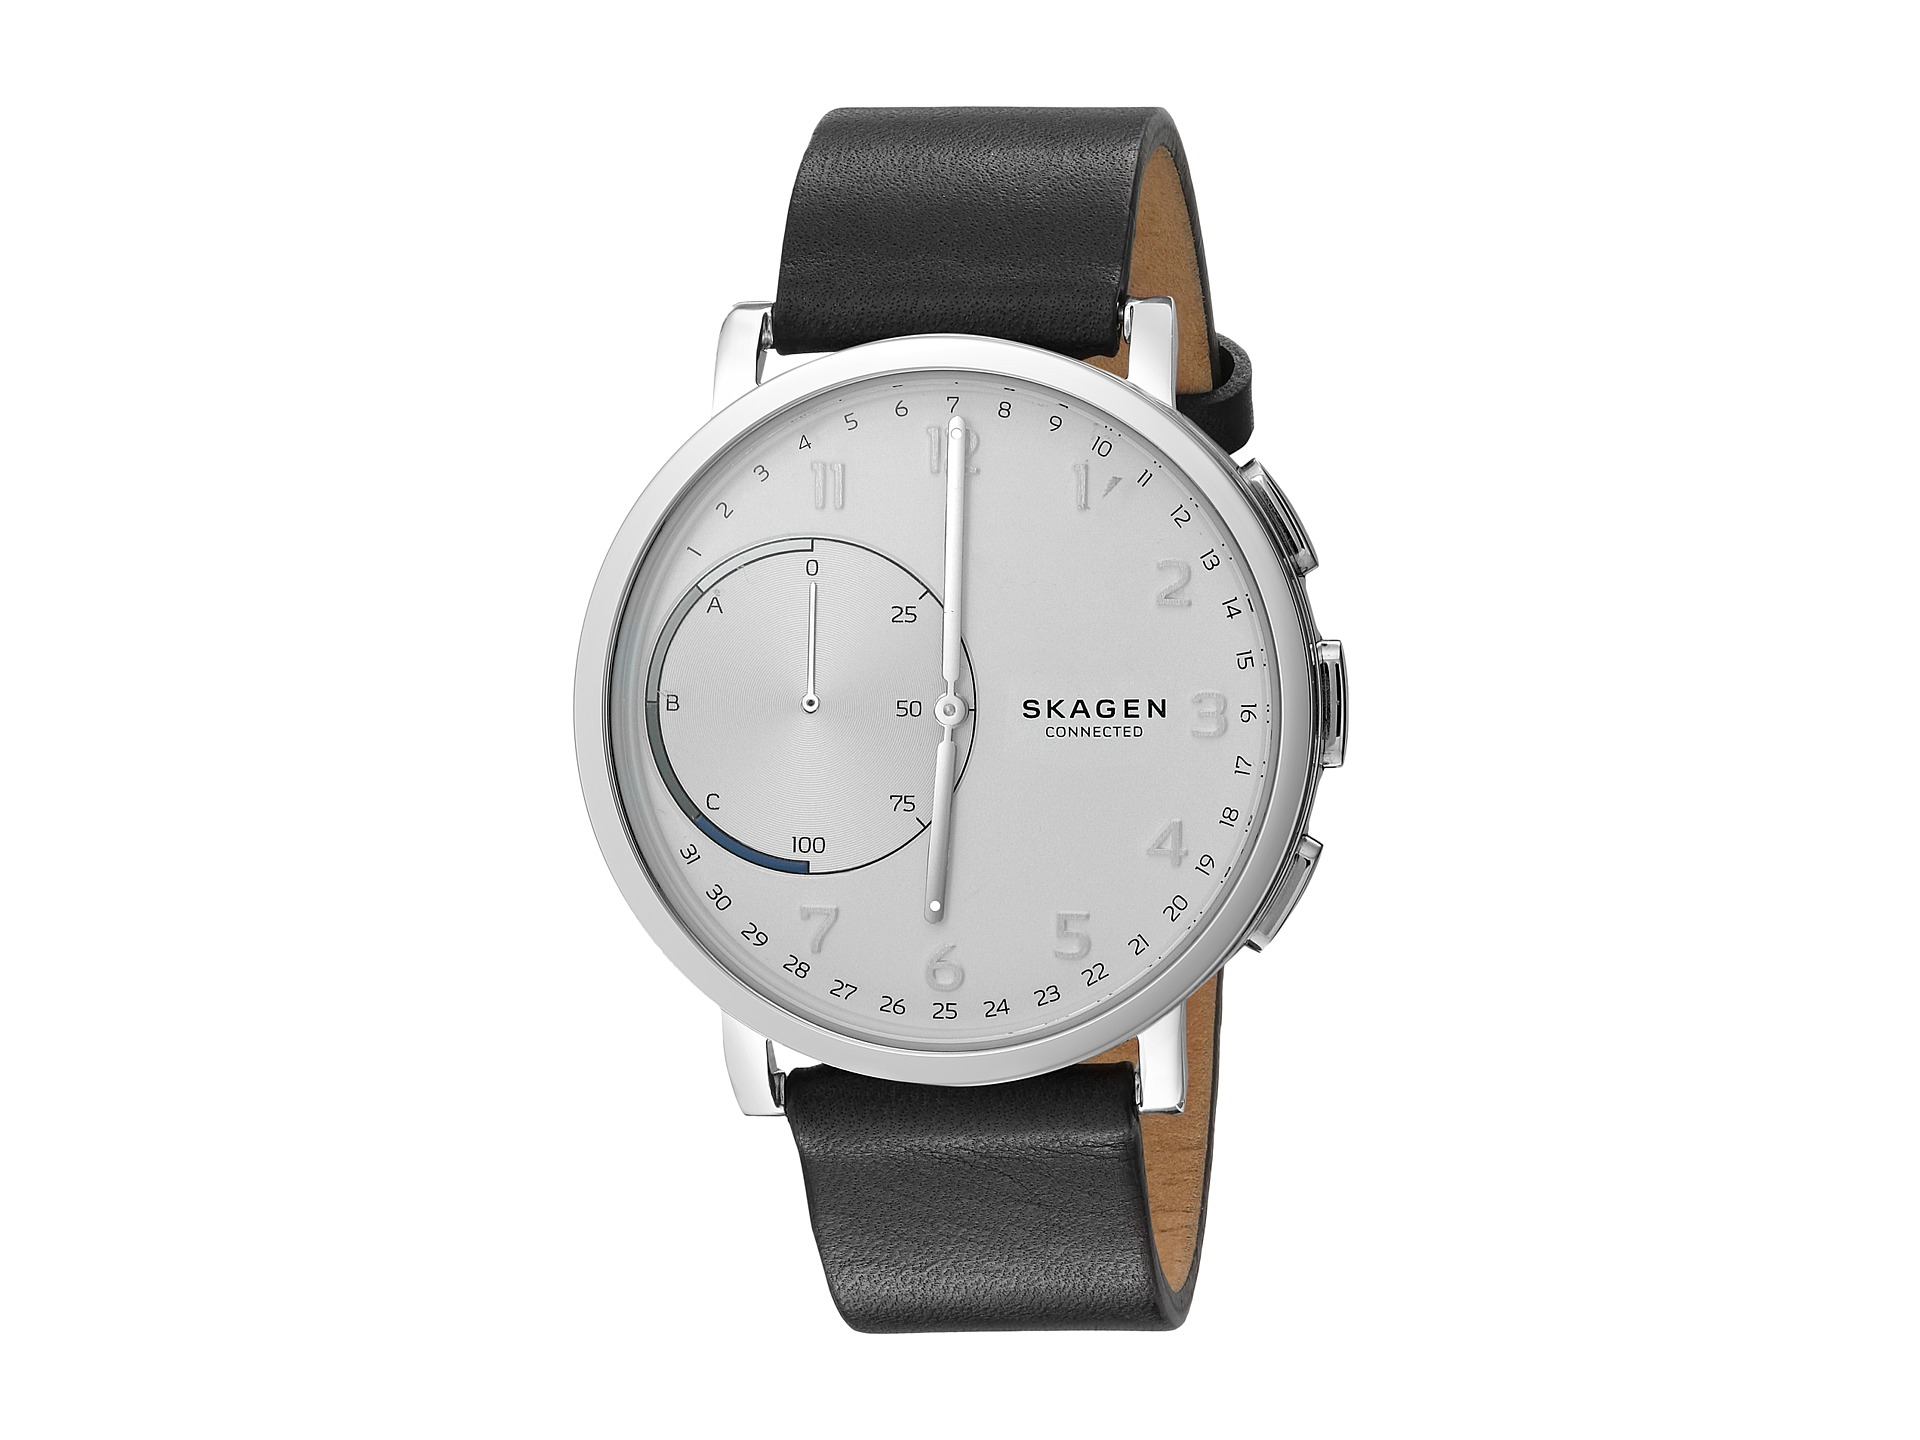 Skagen Hagen Connected Hybrid Smartwatch SKT1101 at Zappos.com